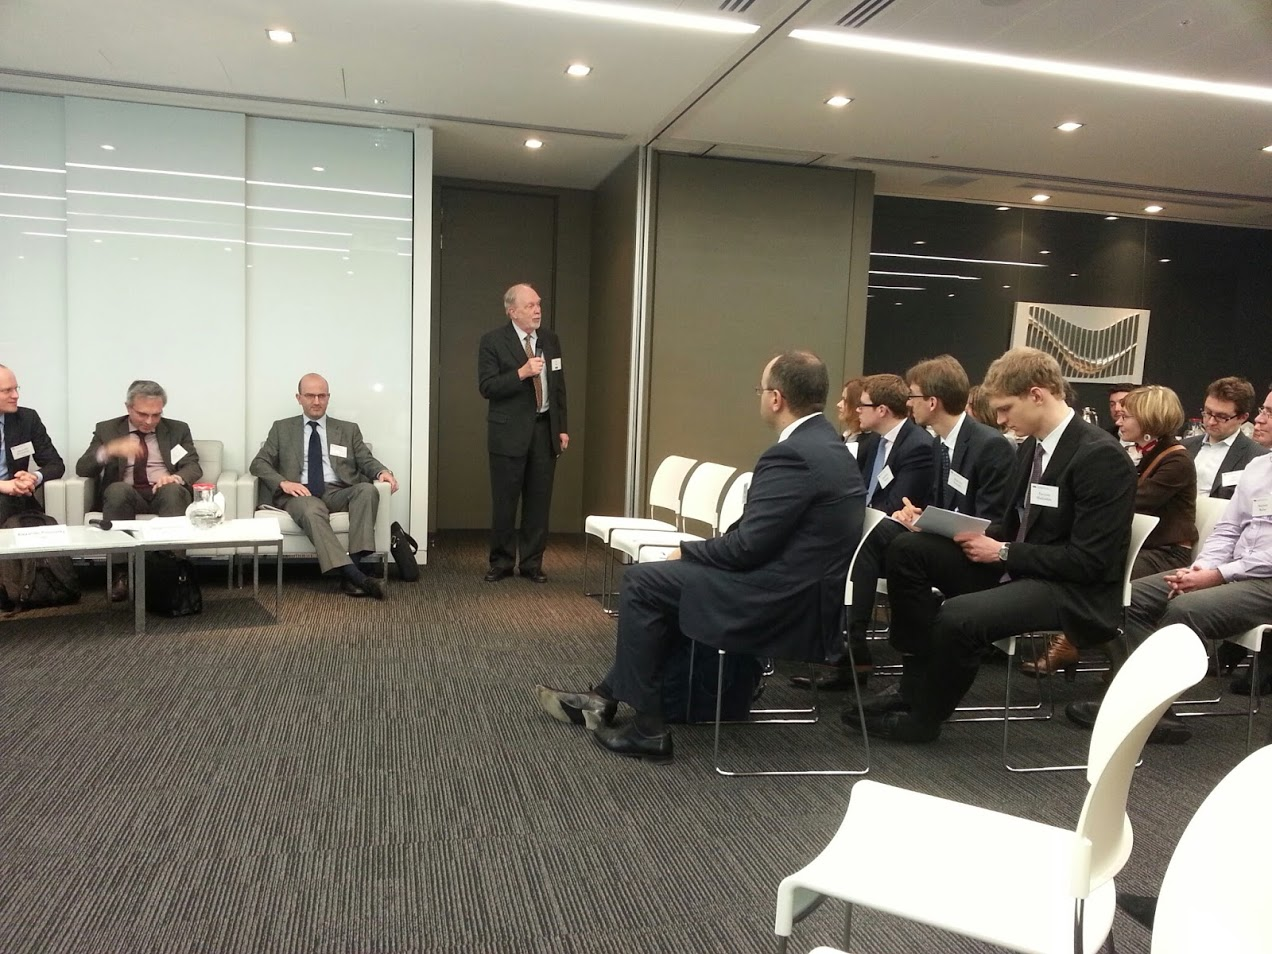 Managing Partner of Bryan Cave London office Rod Page greets the audience.